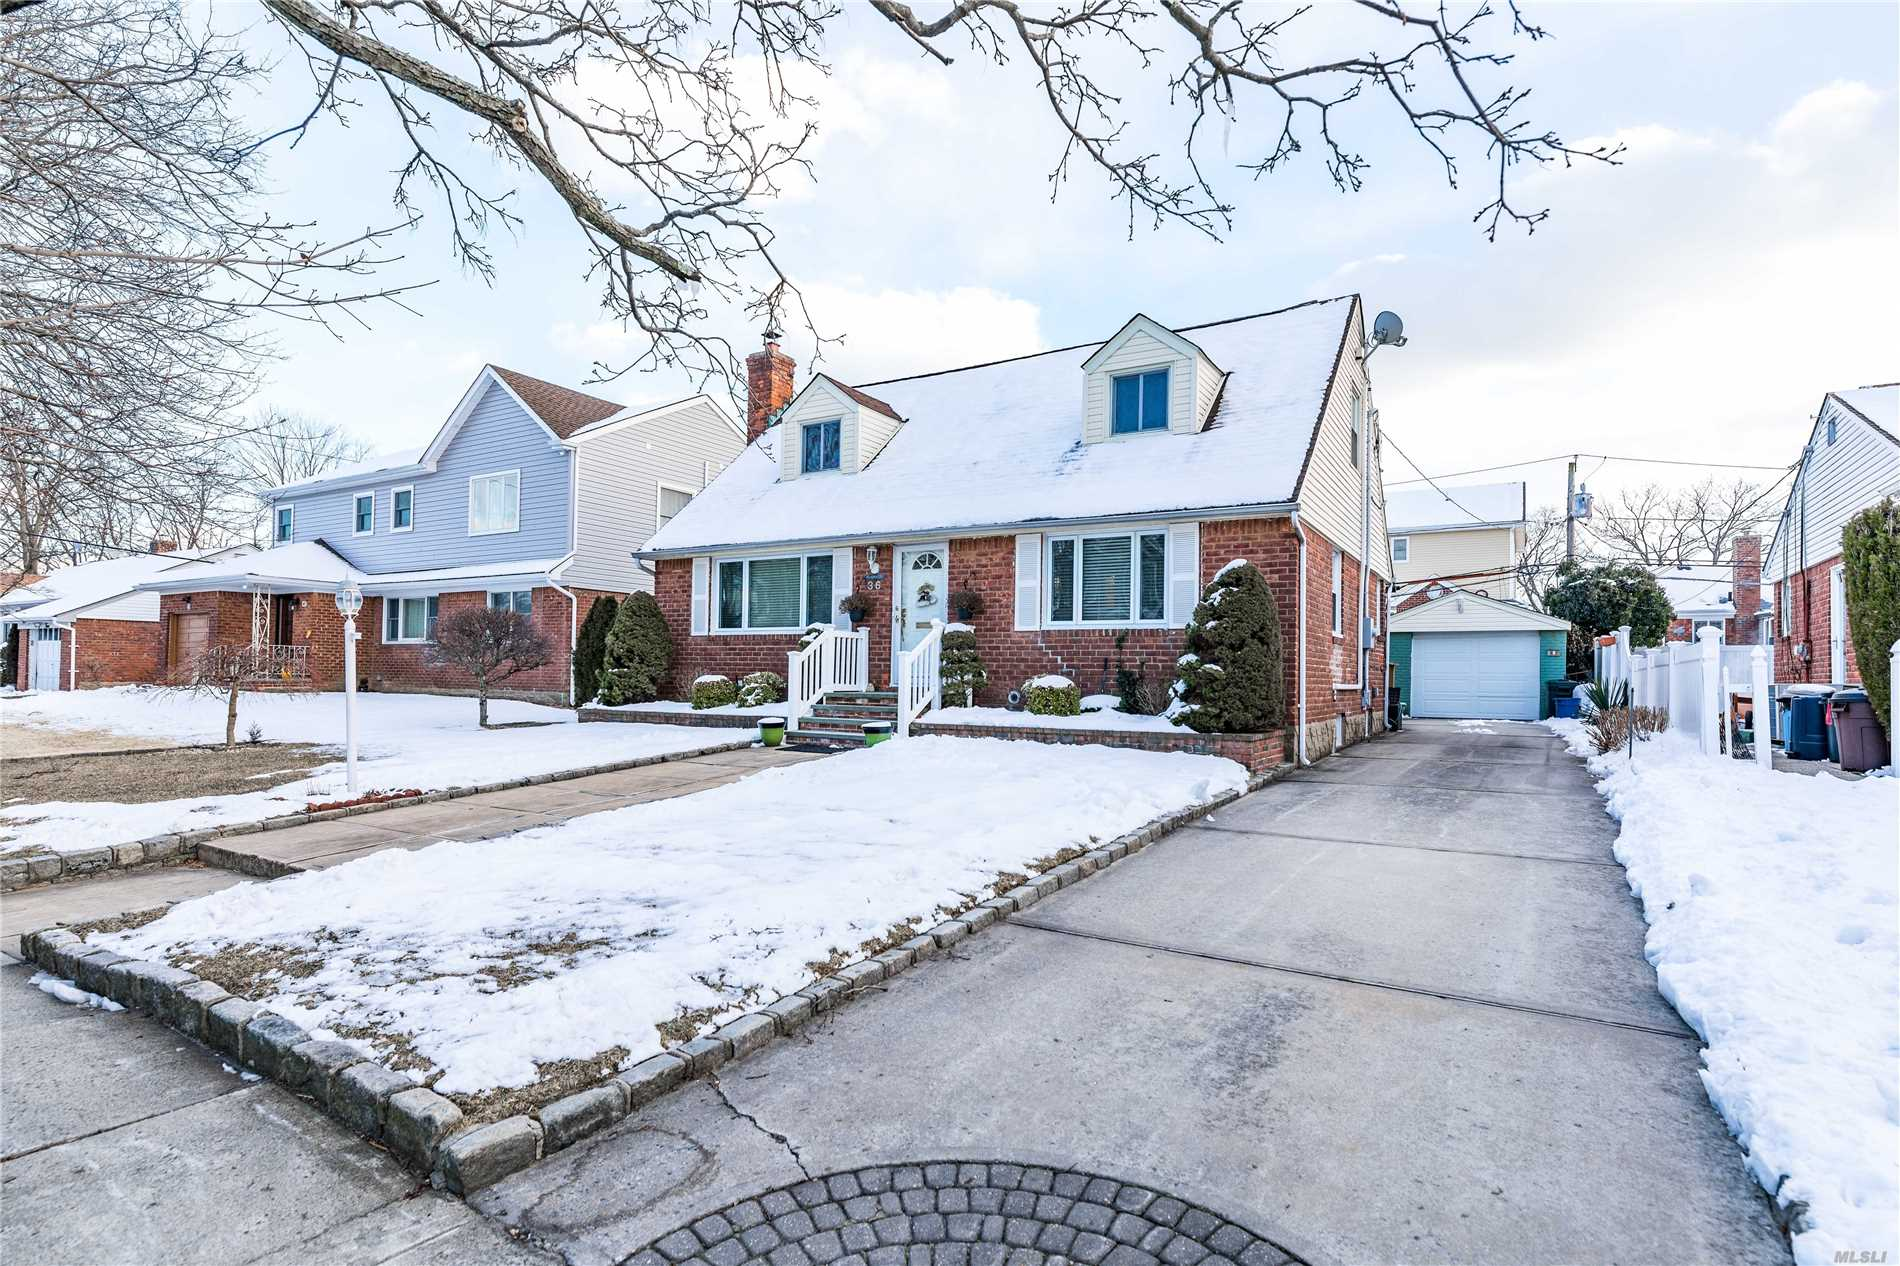 Updated Rear Dormered ( 1950 Sq/ft total w/o basement) 3Br, 3Bath Cape In Herricks Schools W/ Legal Extension For Full Dining Room And Large Family Room With Fire Place. Newer Baths And Updated Kitchen, 3 Zone Heat, 6 Zone Ductless A/C Cooling.